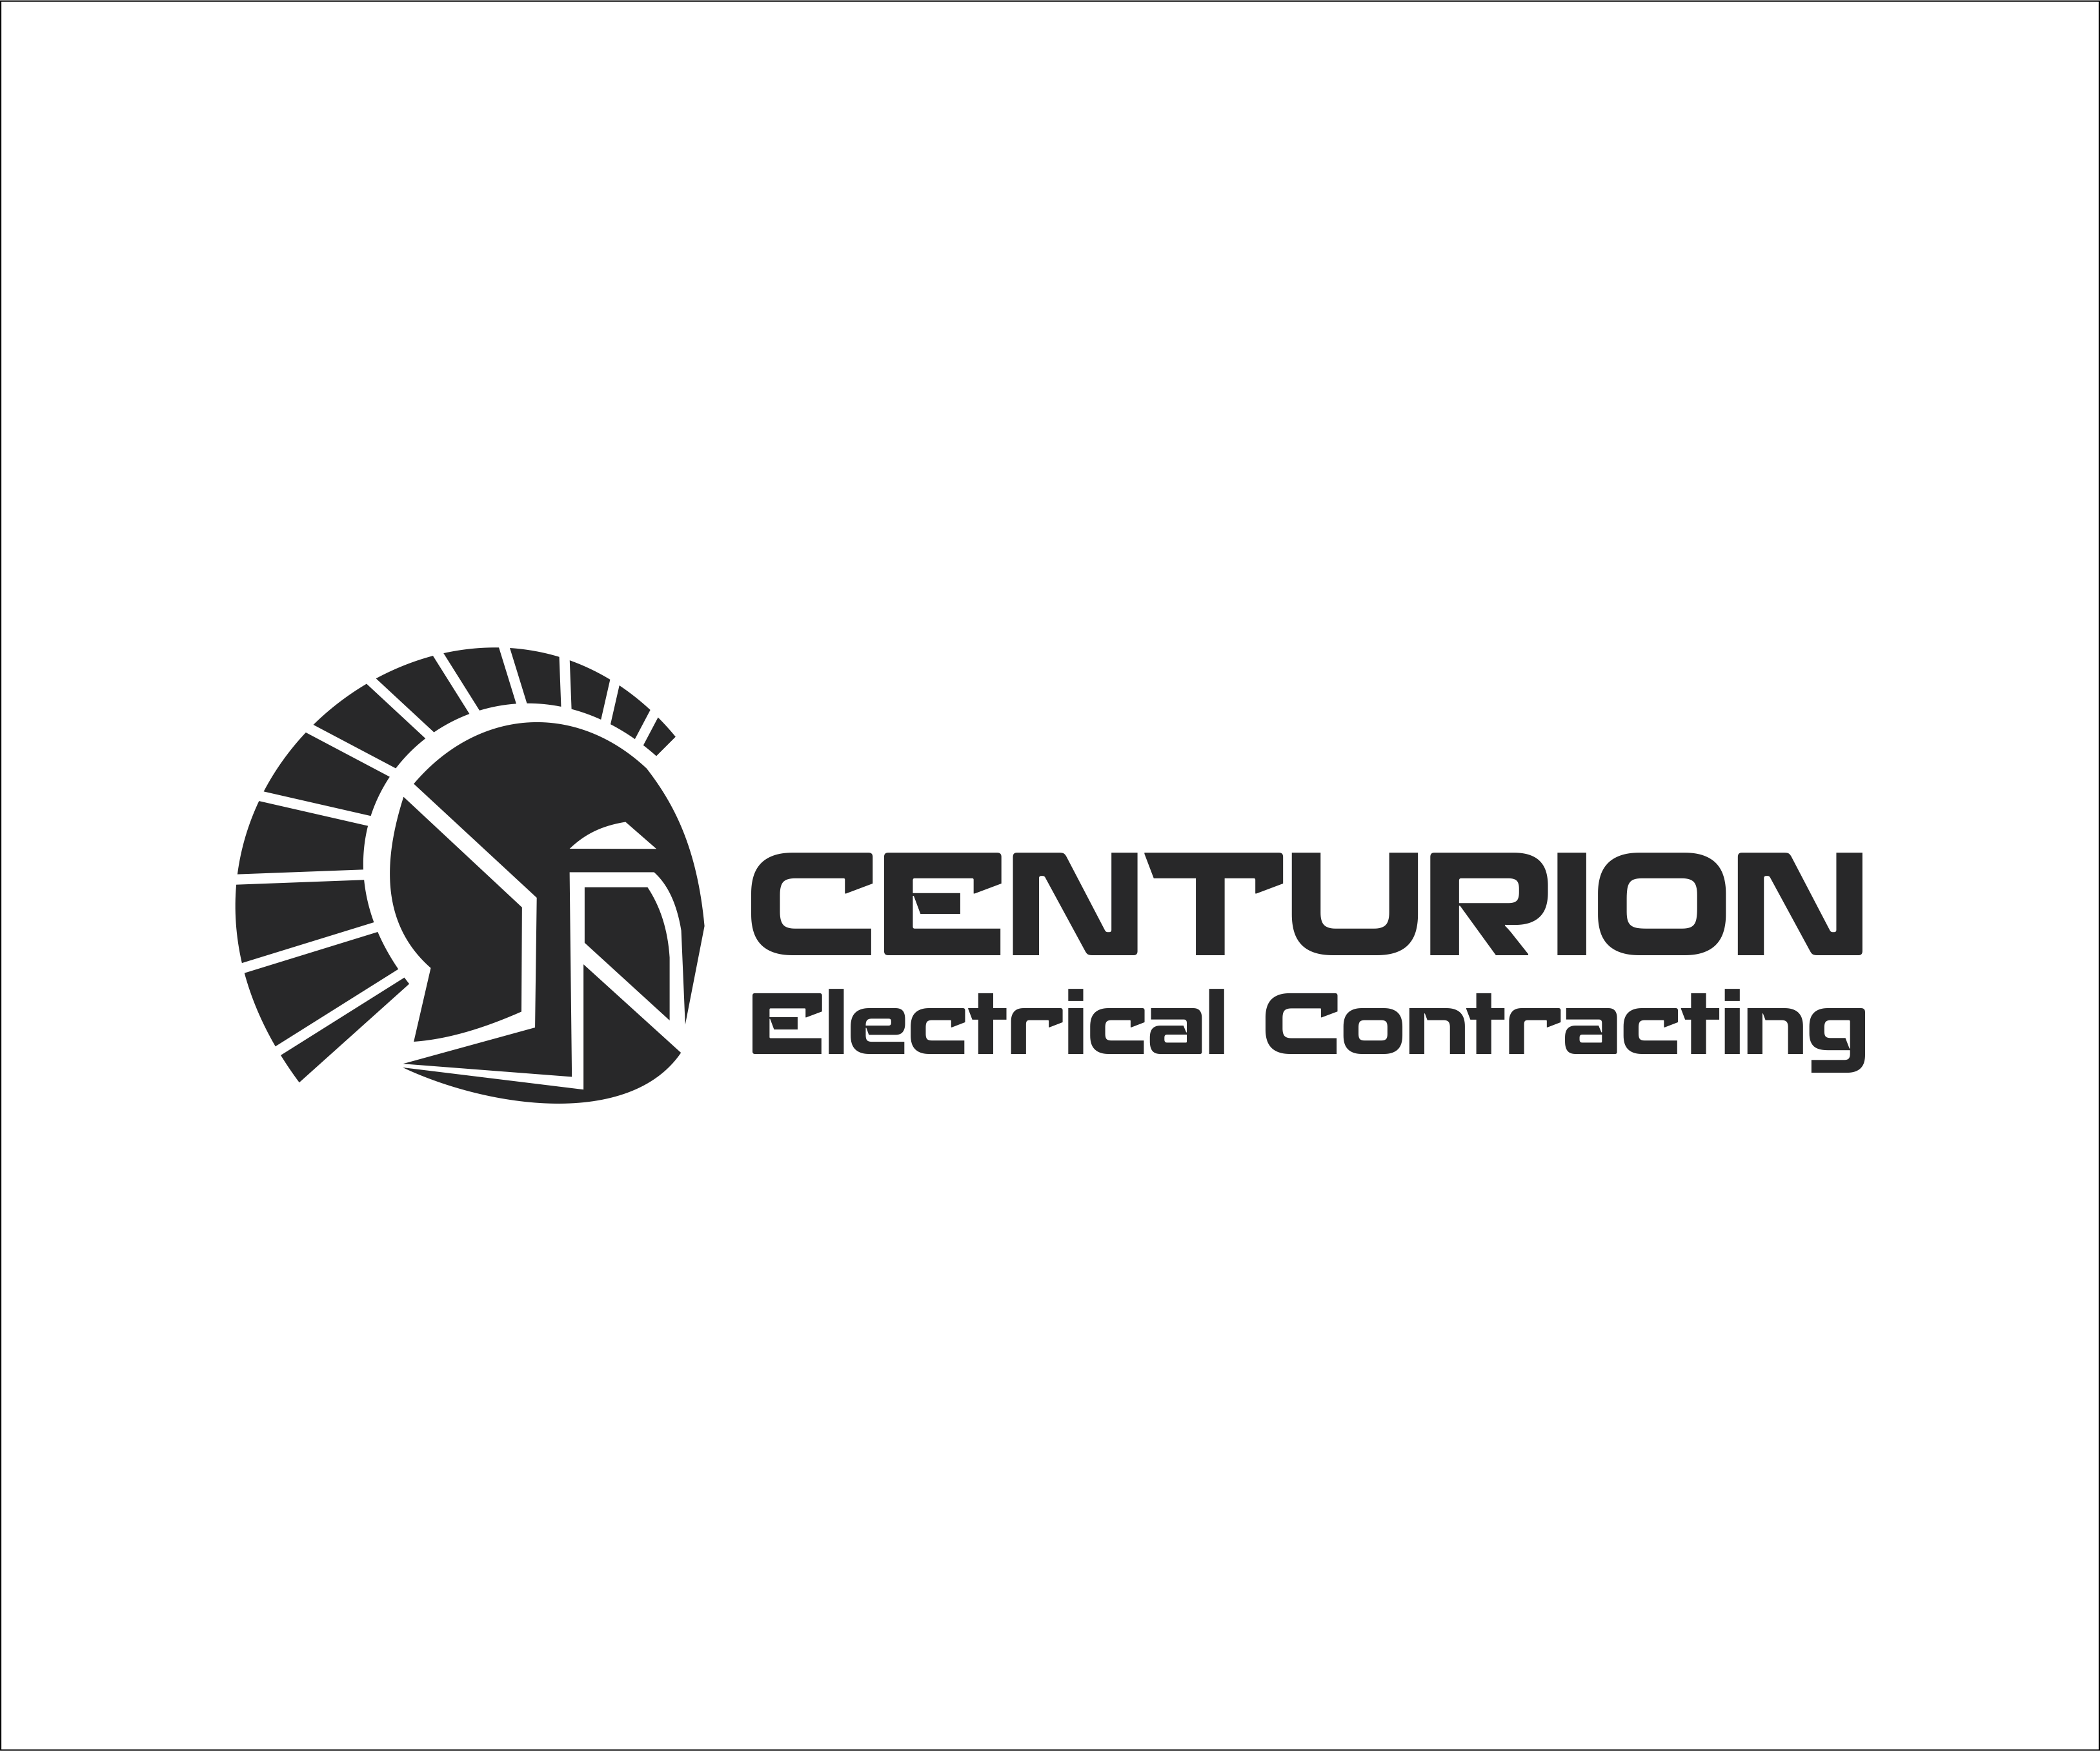 Centurion Electrical Contracting  EC006641 Logo